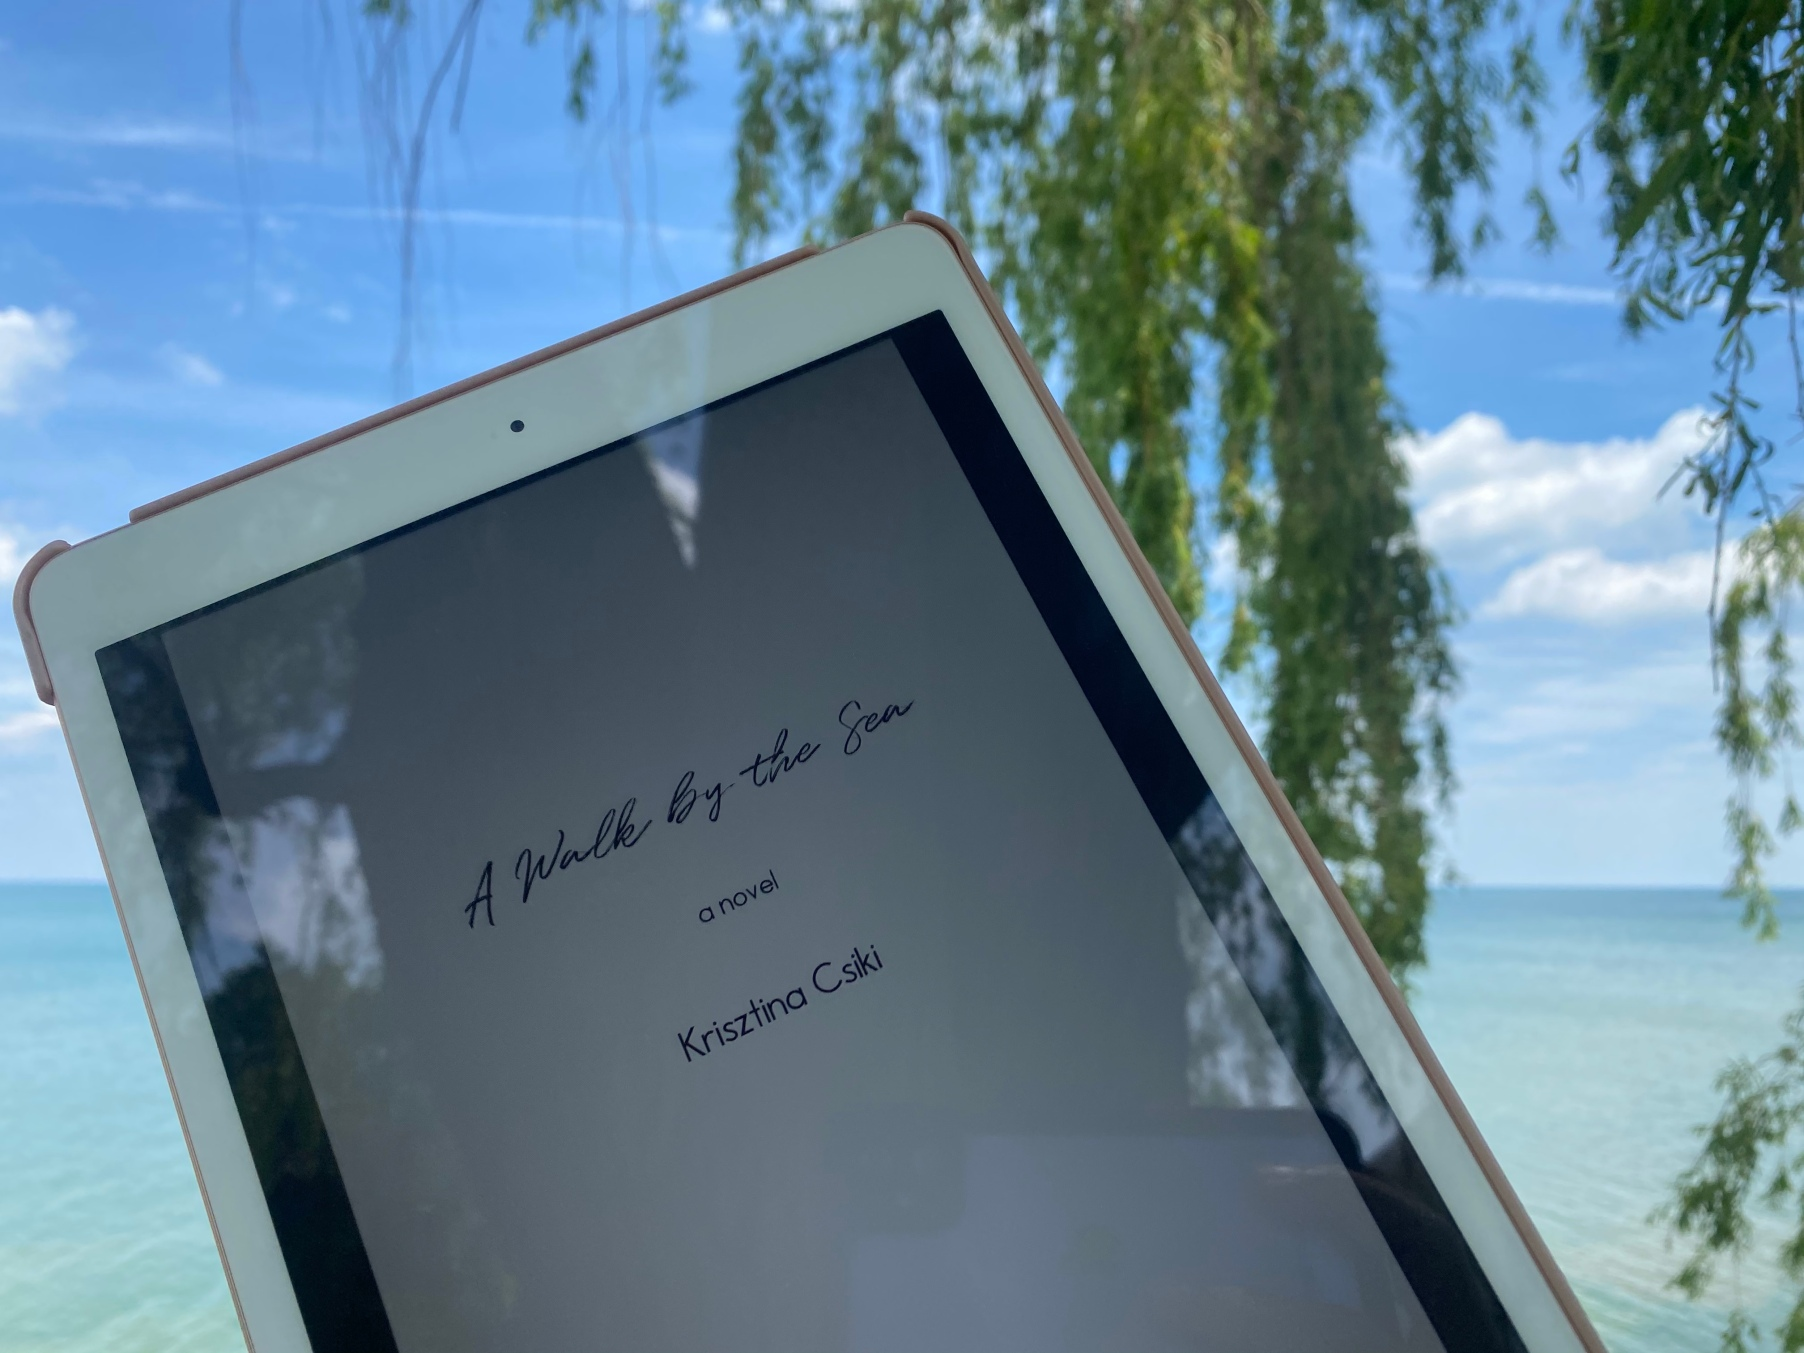 Book Review A Walk by the Sea by Krisztina Csiki